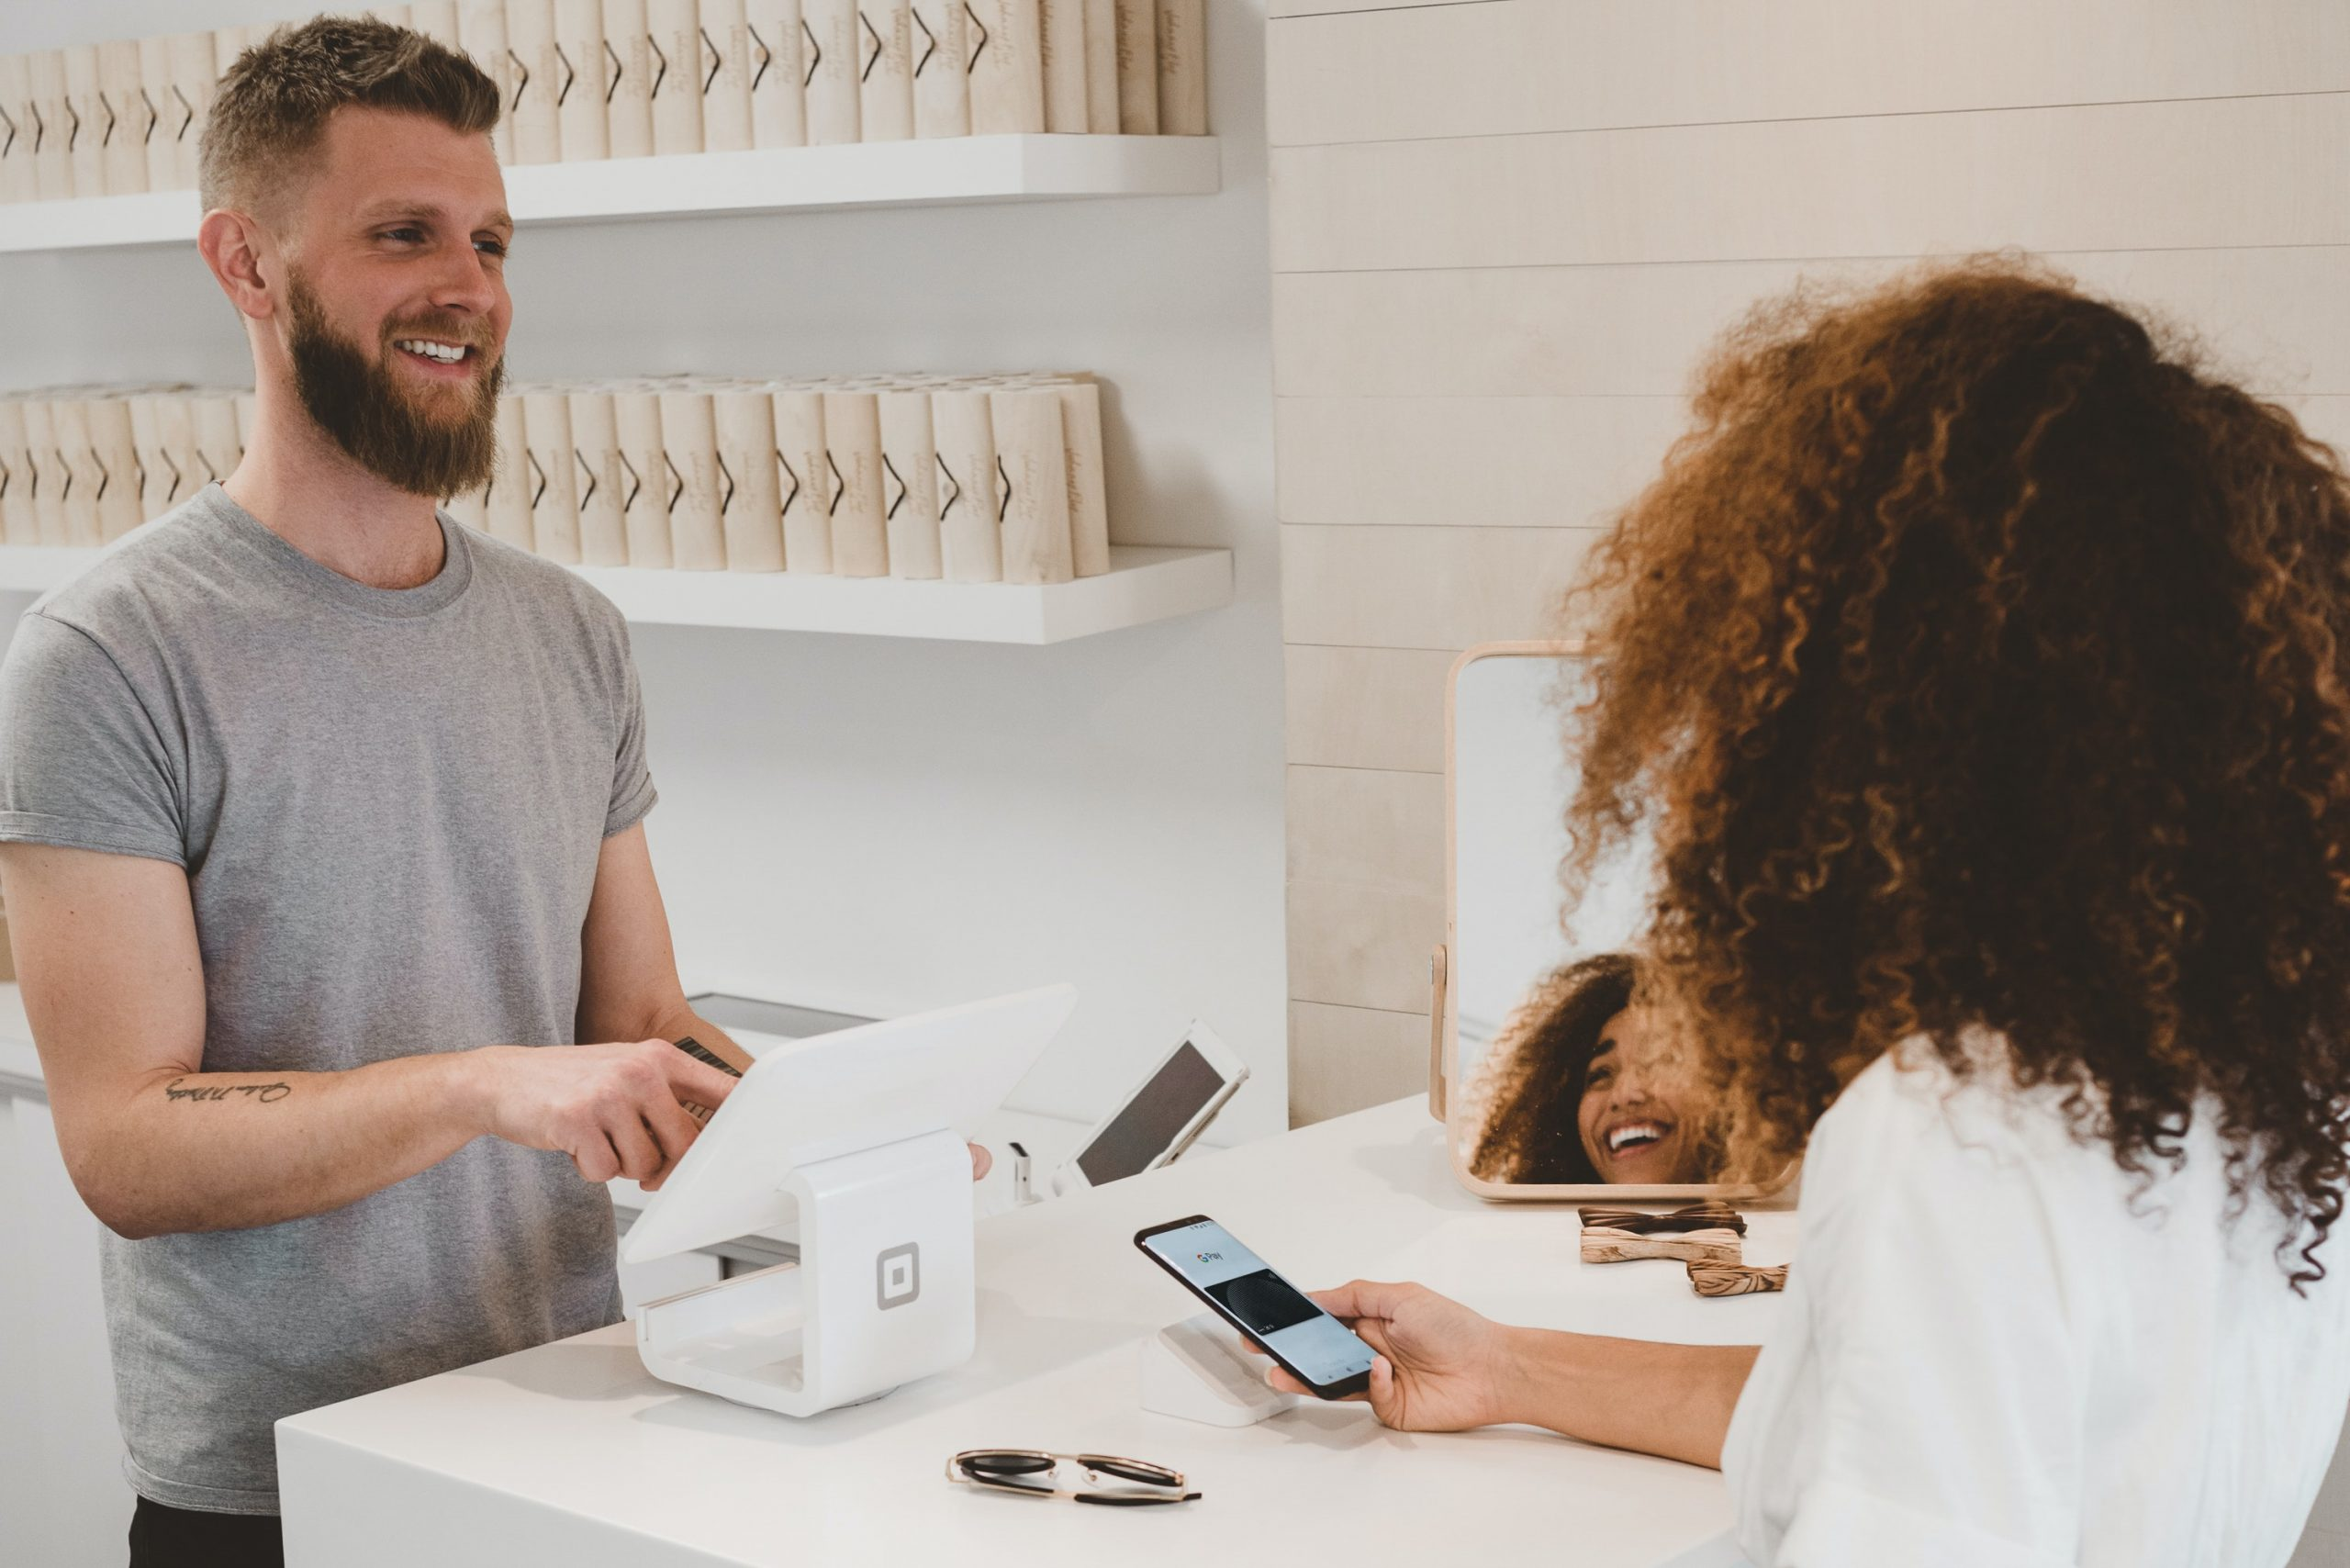 Happy Employees = Happy Customers: Five Ways HR Creates a Happy Place for Both and Your Bottom Line